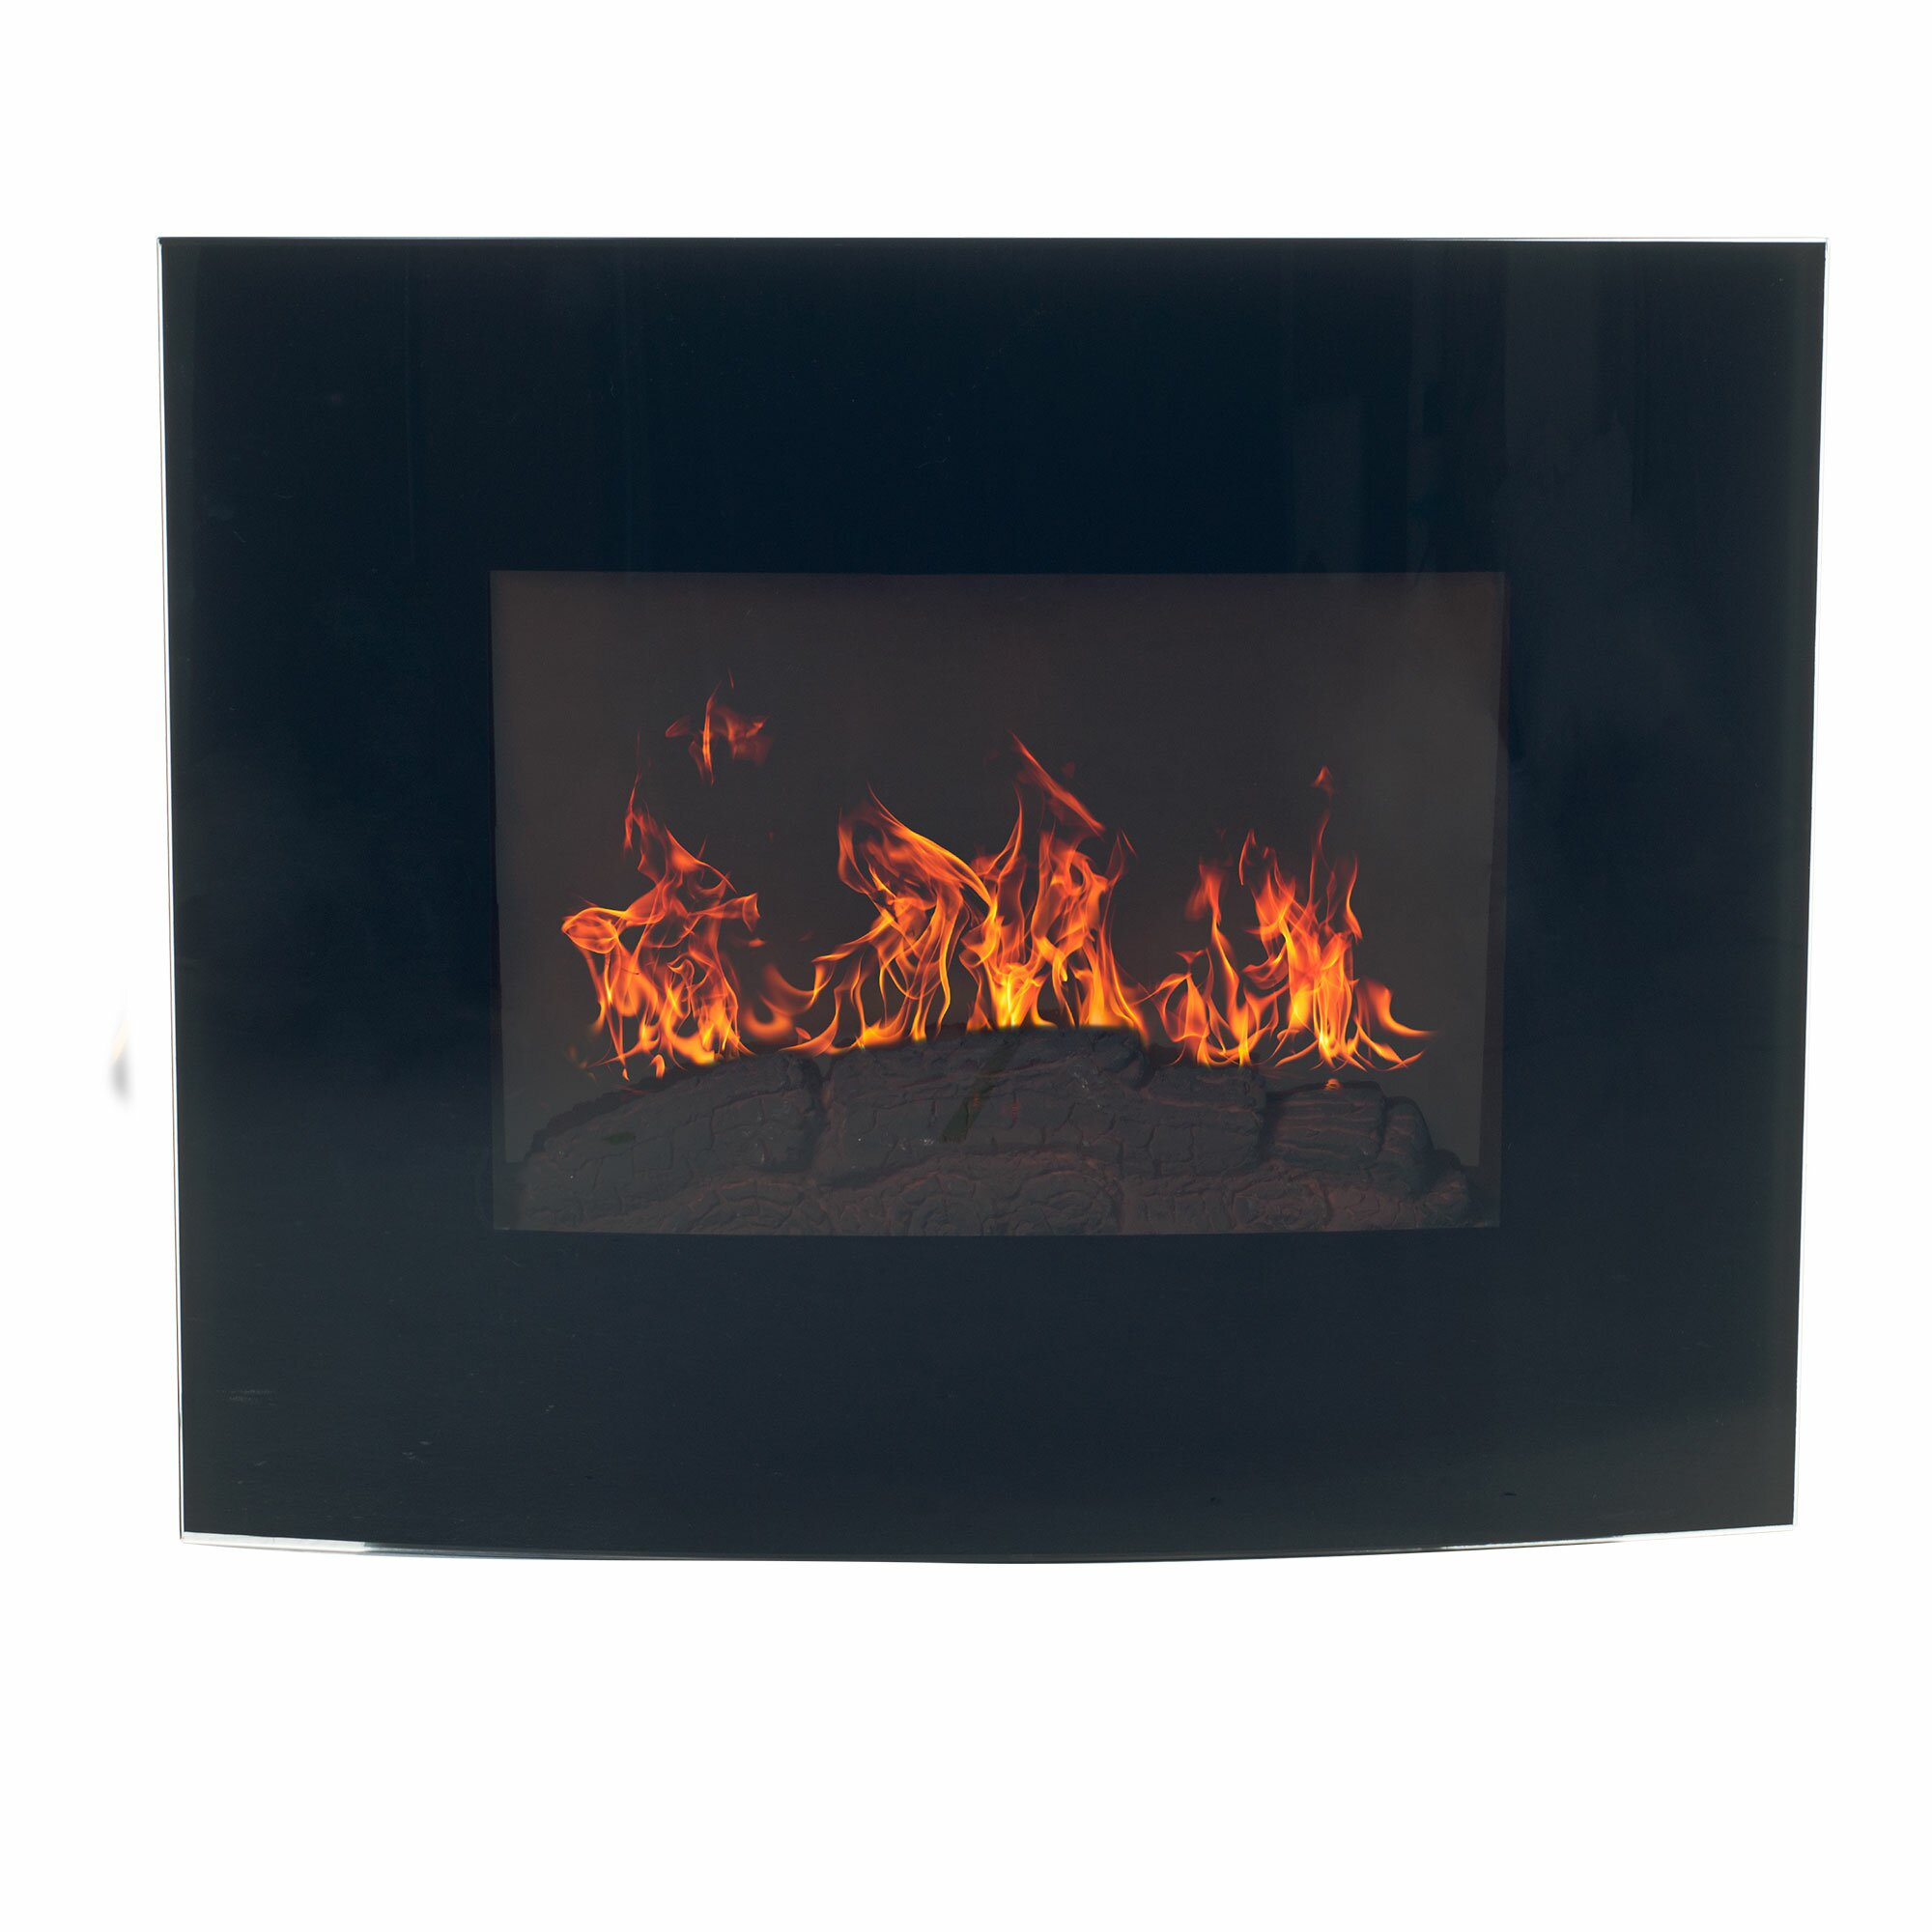 Northwest curved wall mount electric fireplace reviews for Curved glass wall